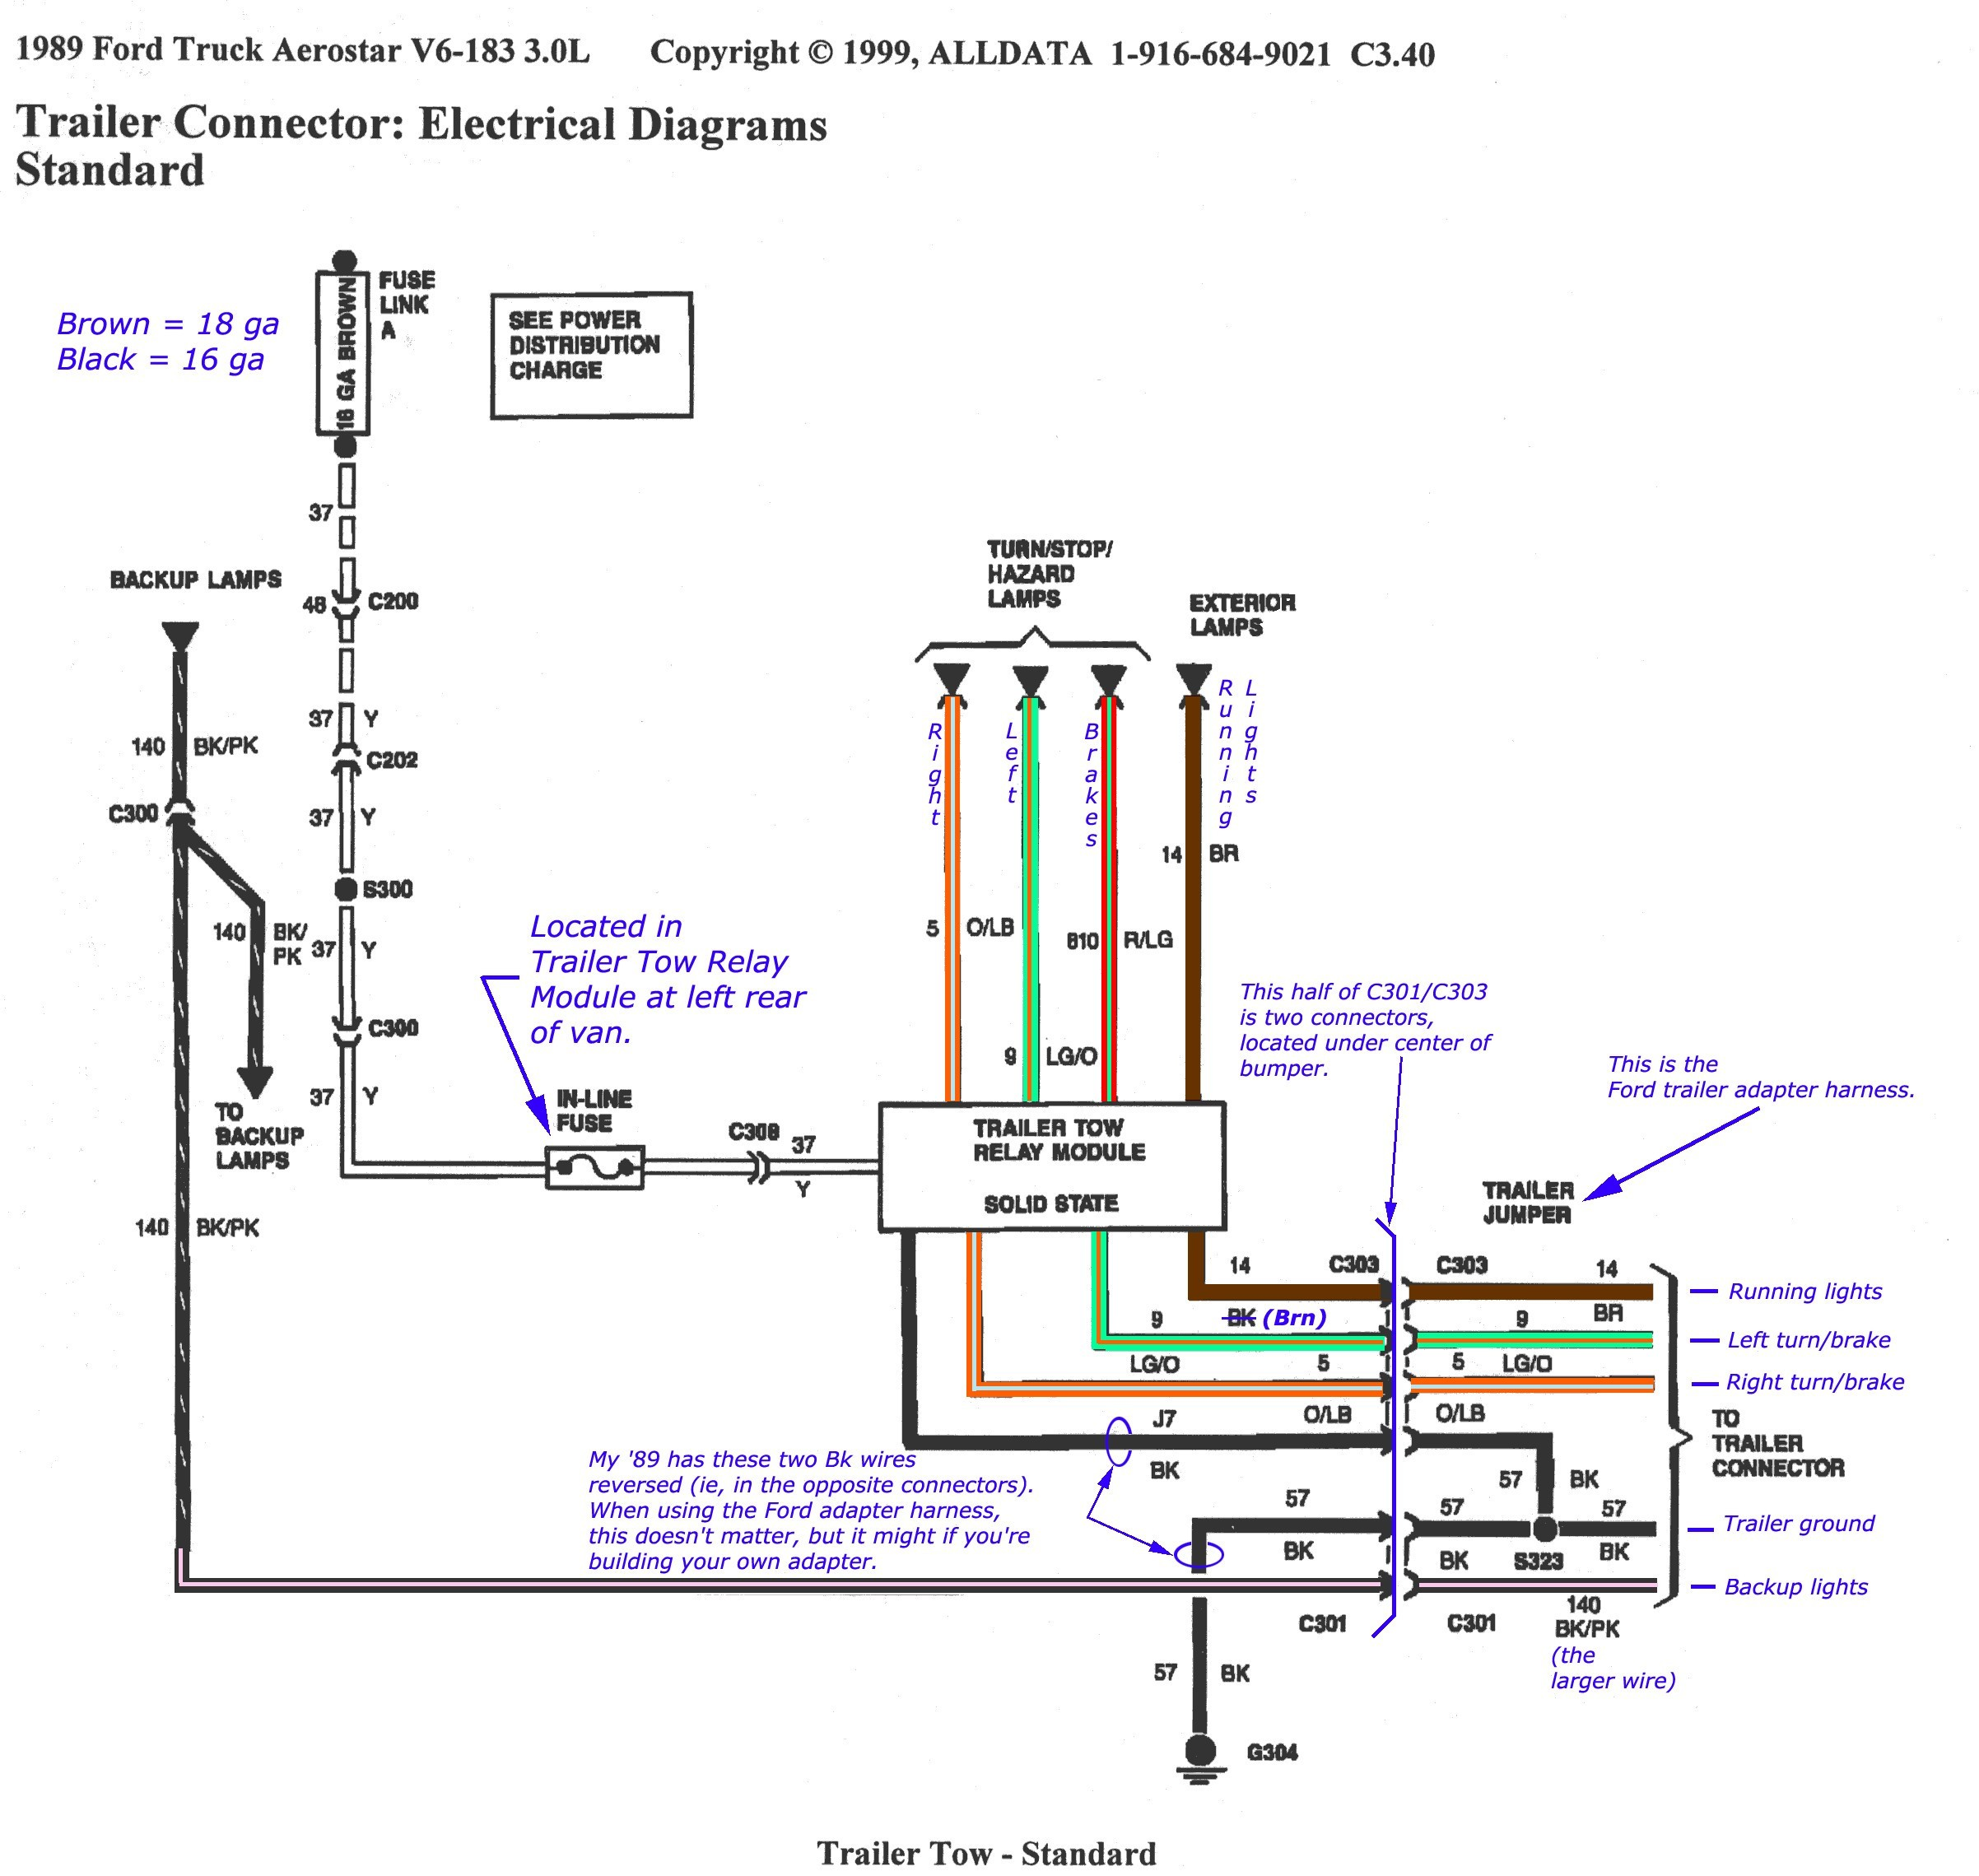 99 f350 wiring diagram electrical diagrams forum u2022 rh jimmellon co uk 2004 f350 light wiring diagram 1997 f350 light wiring diagram